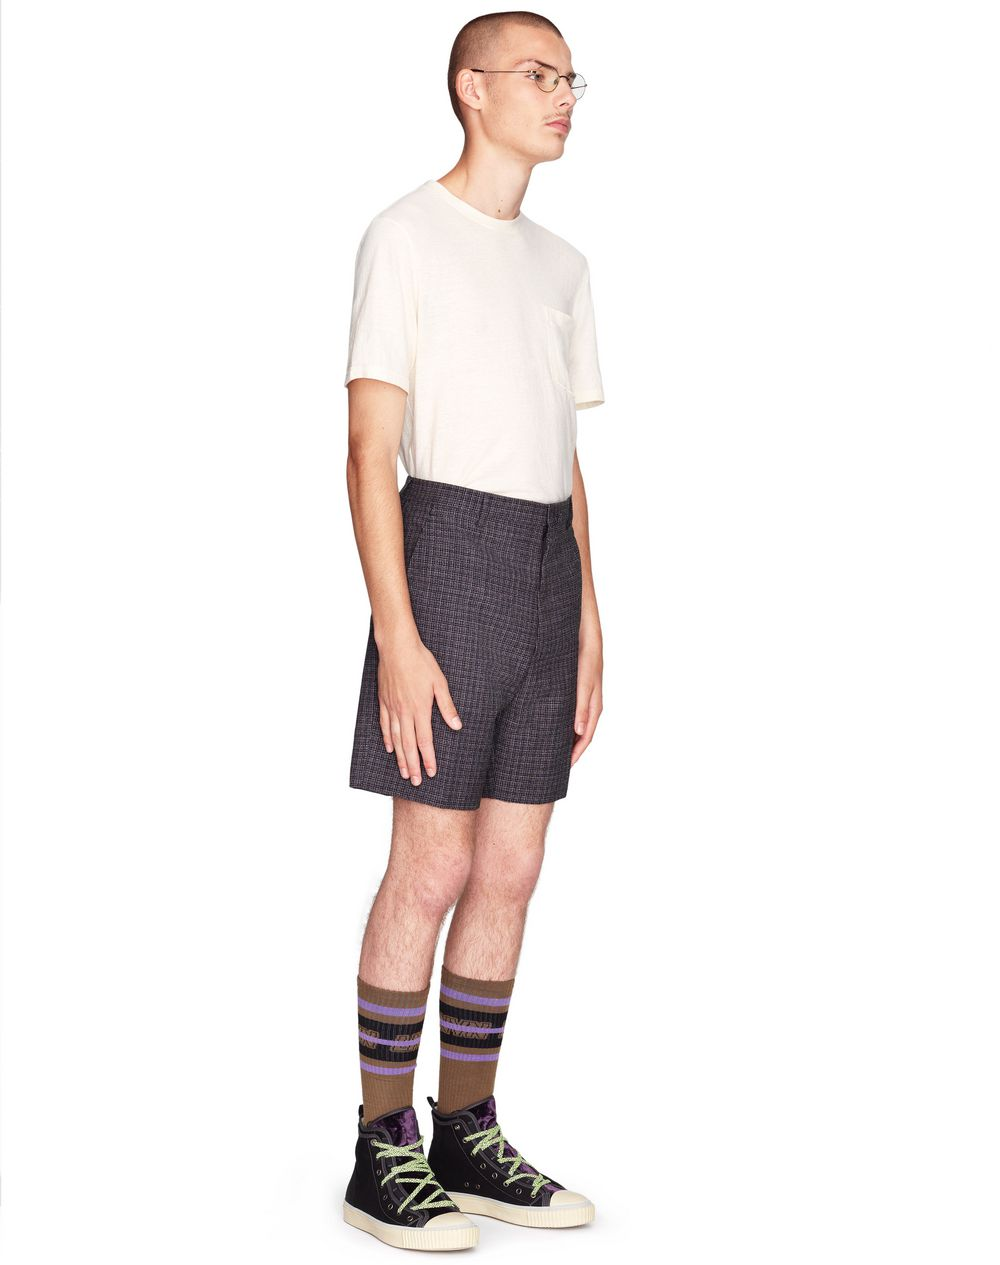 SHORTS SARTORIALI IN TWEED    - Lanvin